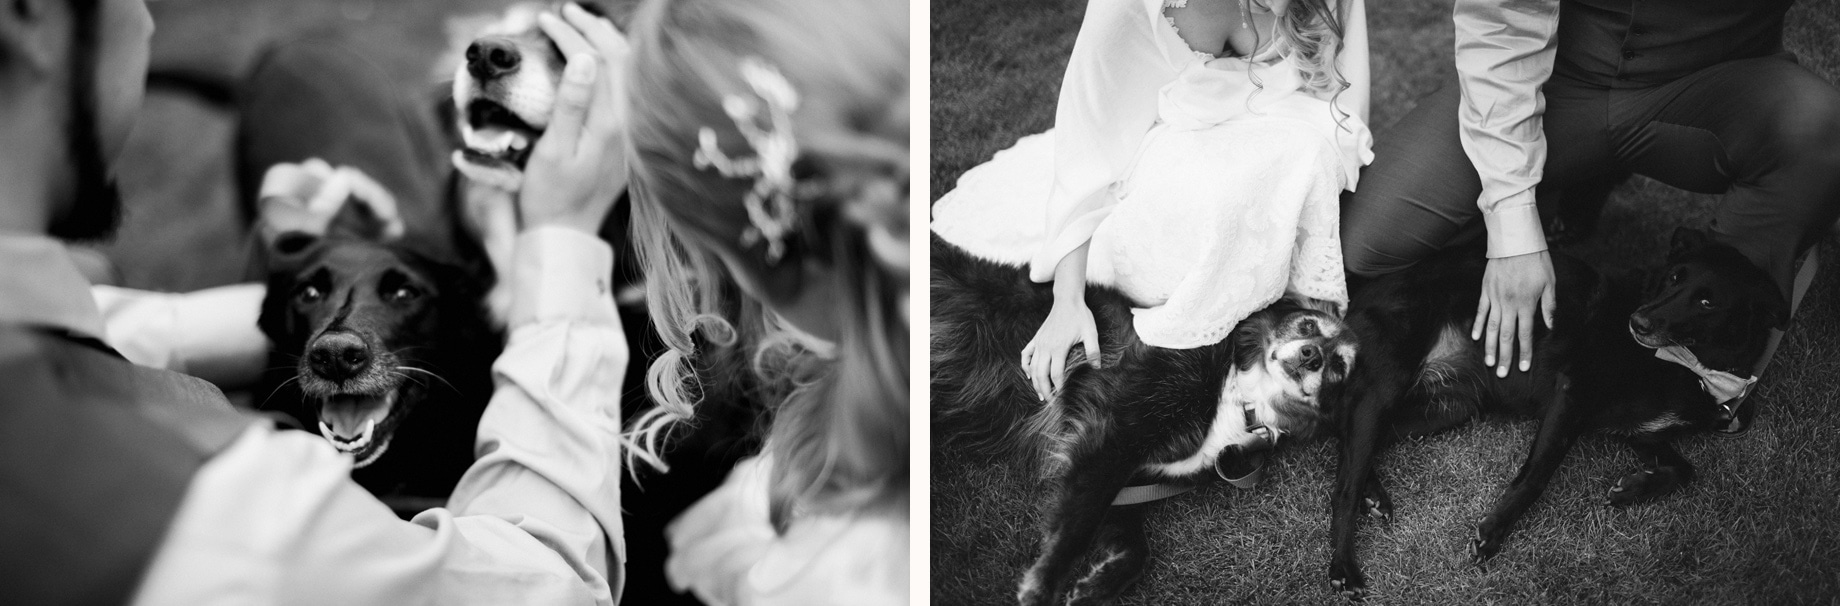 bride and groom with two dogs